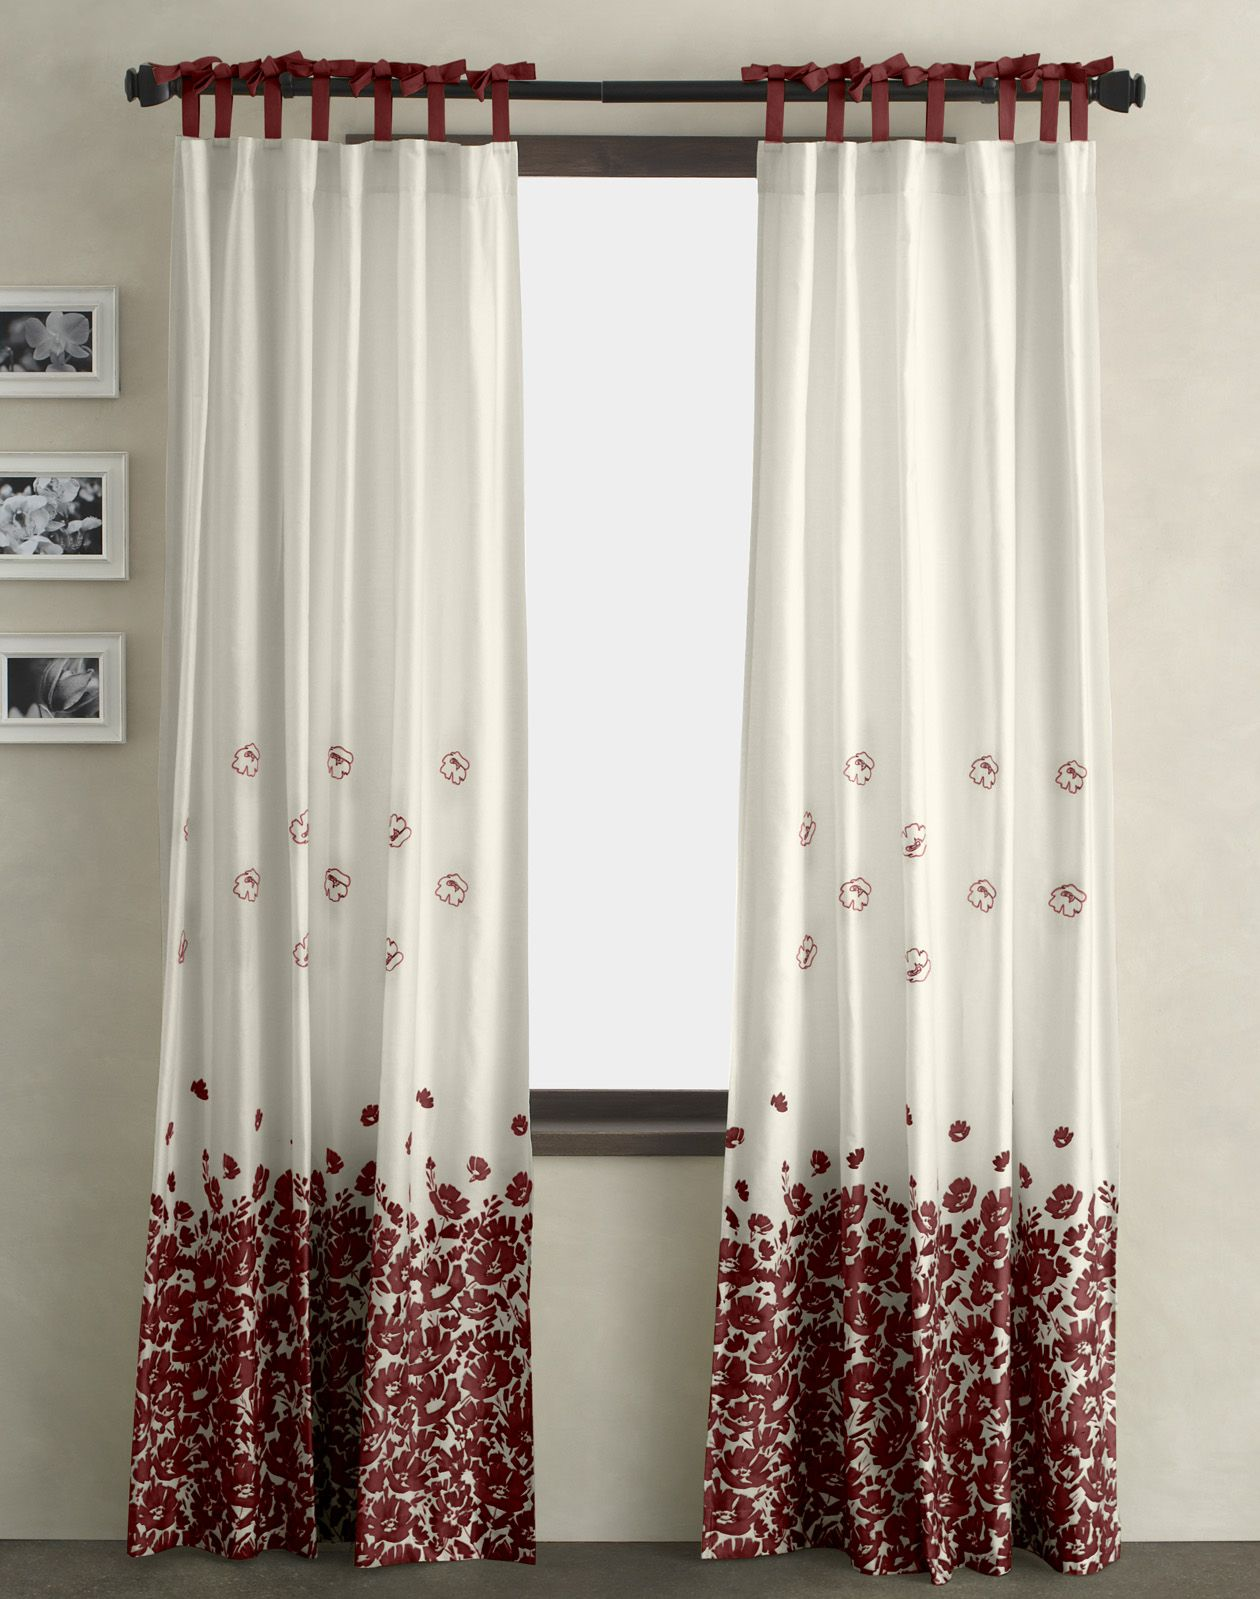 Wildflowers Pictures FOR BEDROOM TO BUY | Discount Curtains ...